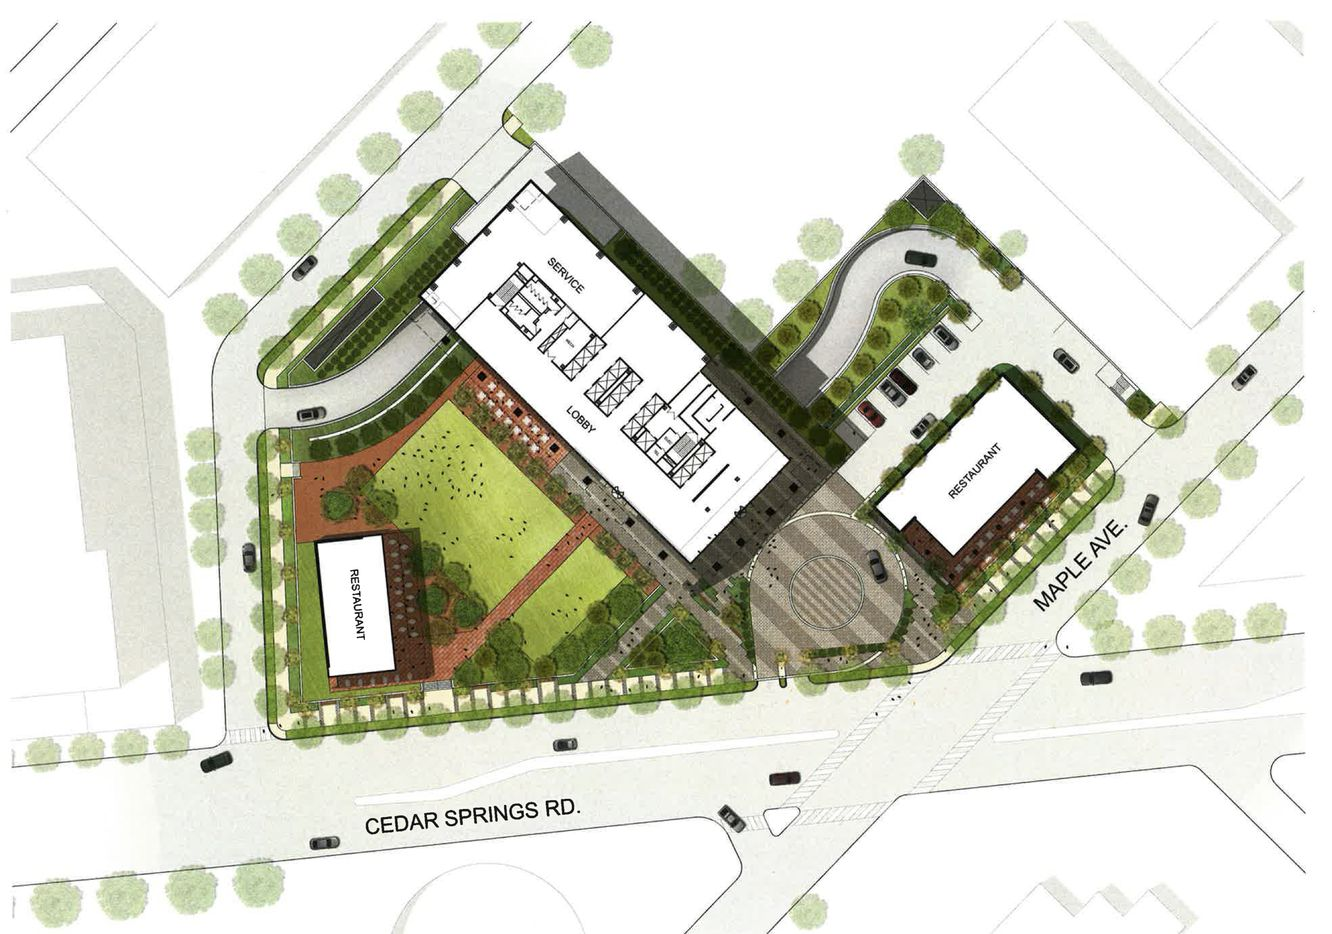 The developers say they would build on only 50 percent of the more than 2-acre property.